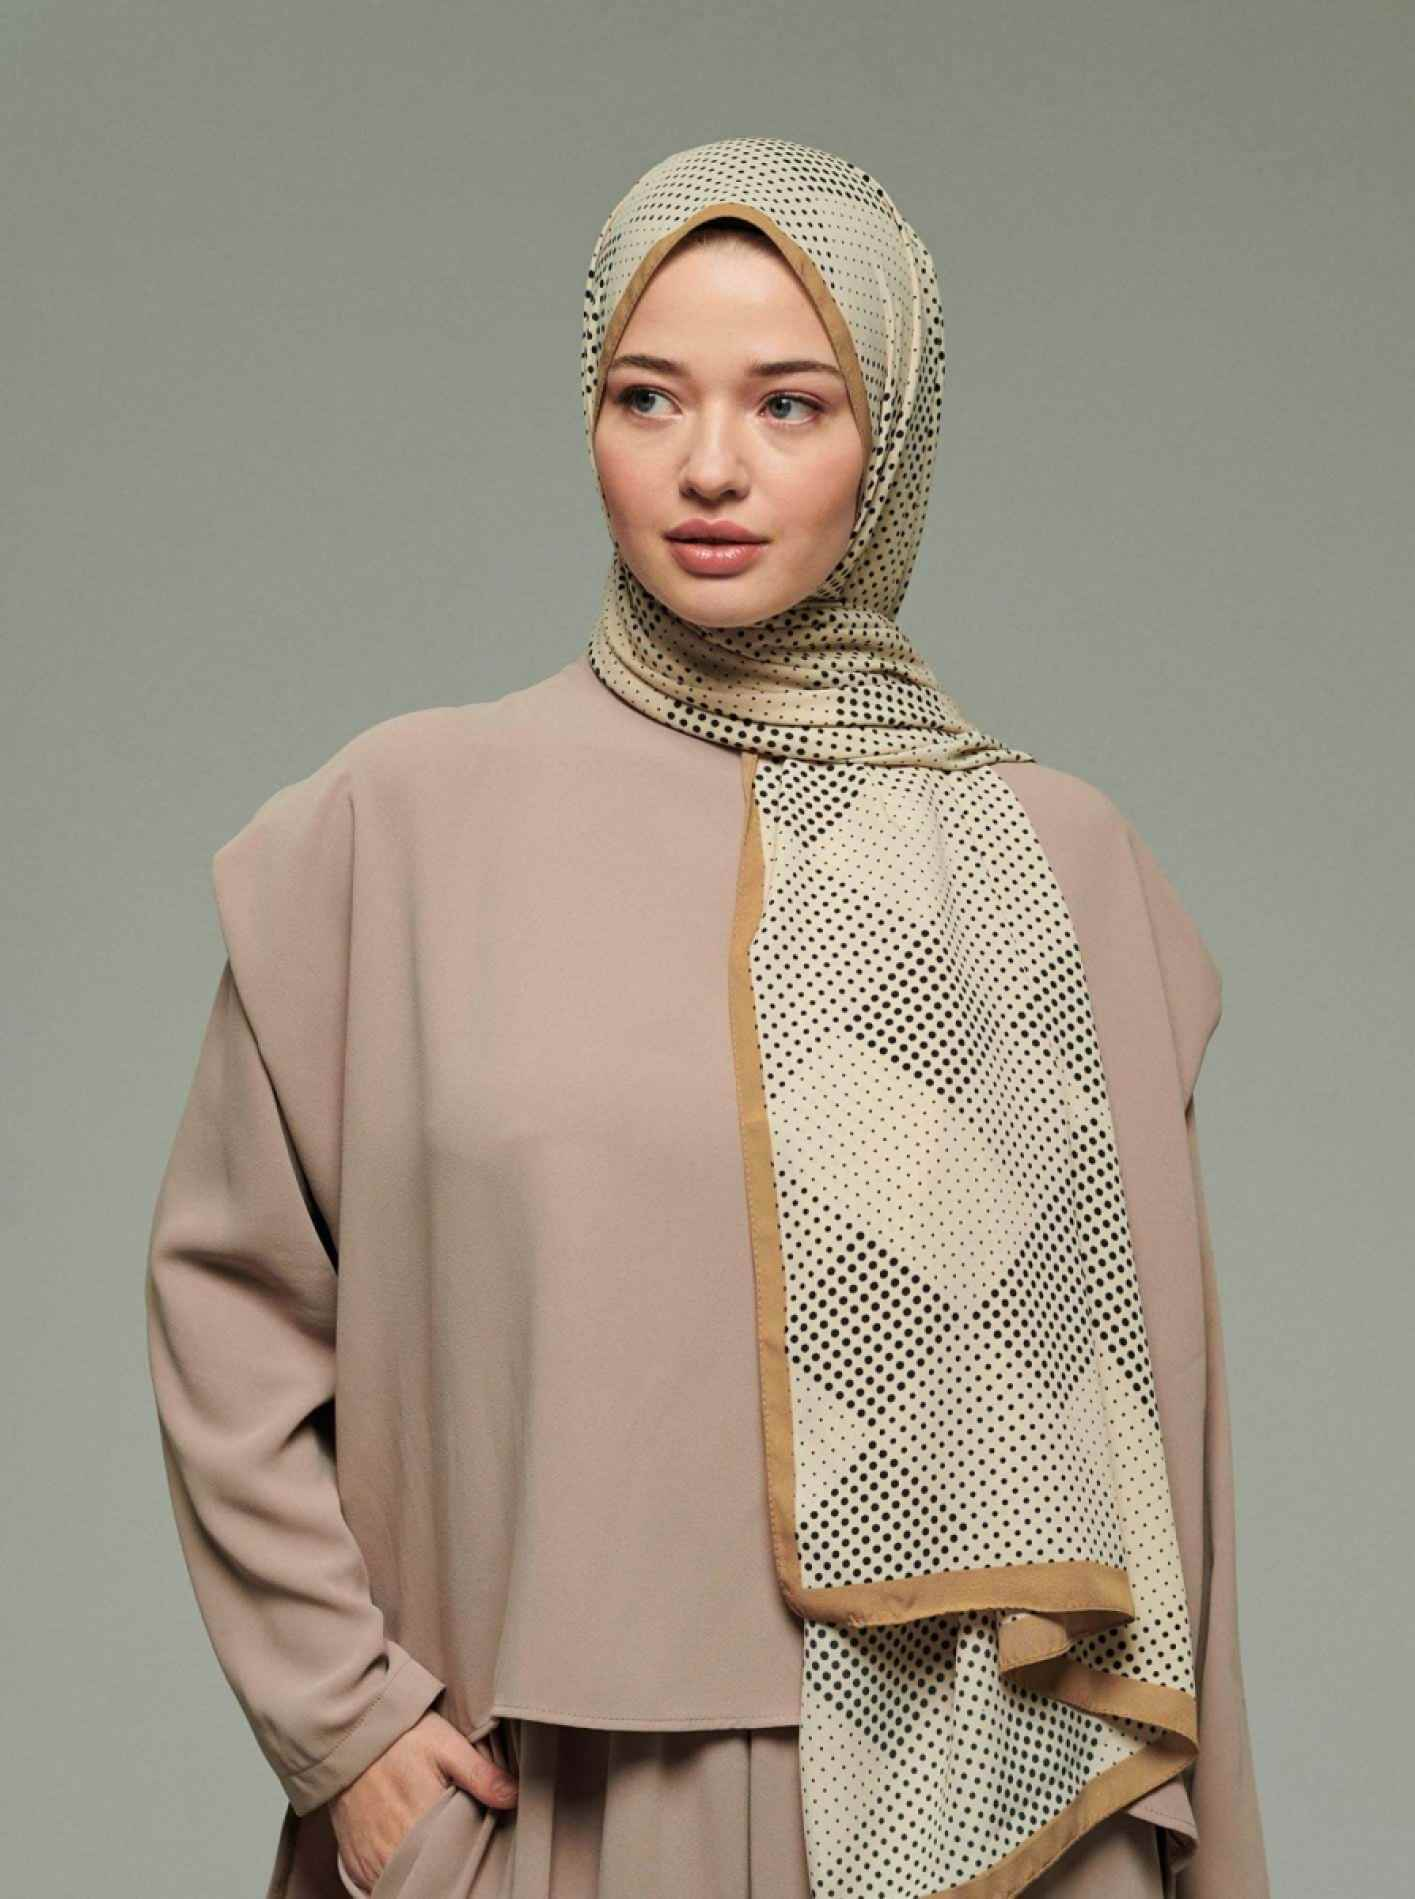 Caramel Series Point Patterned Shawl